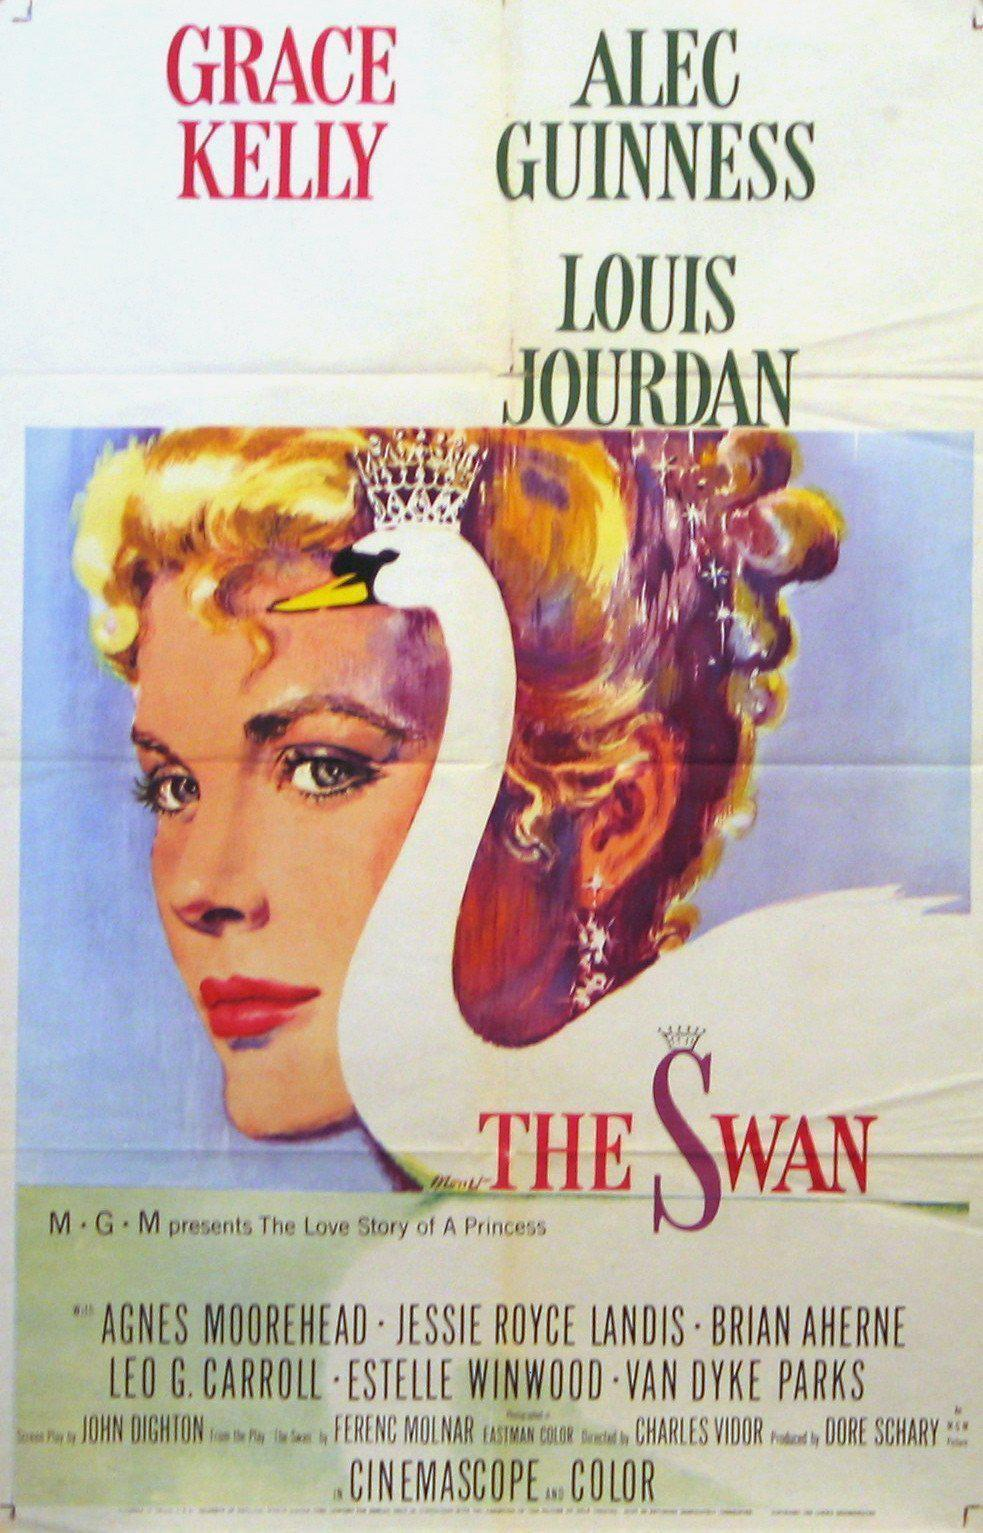 The Swan 1 Sheet (27x41) Original Vintage Movie Poster